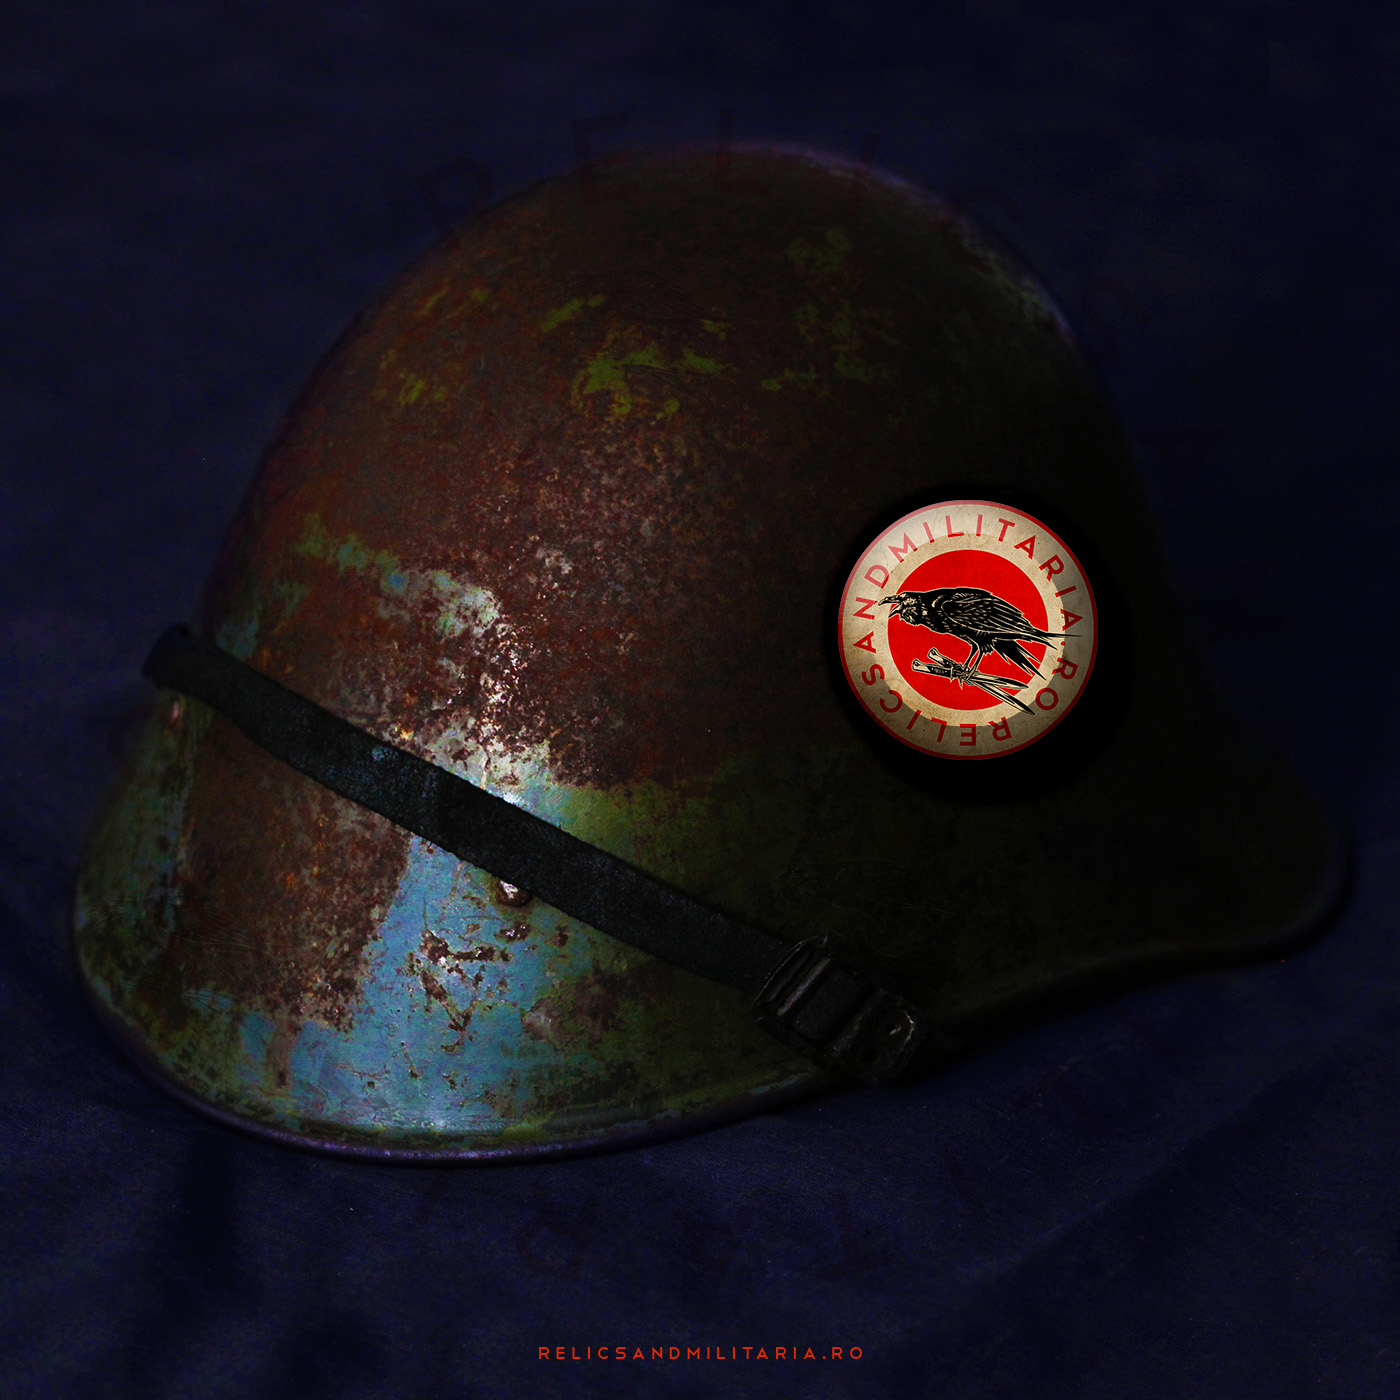 Dutch steel helmet used by the Romanian Army in ww2